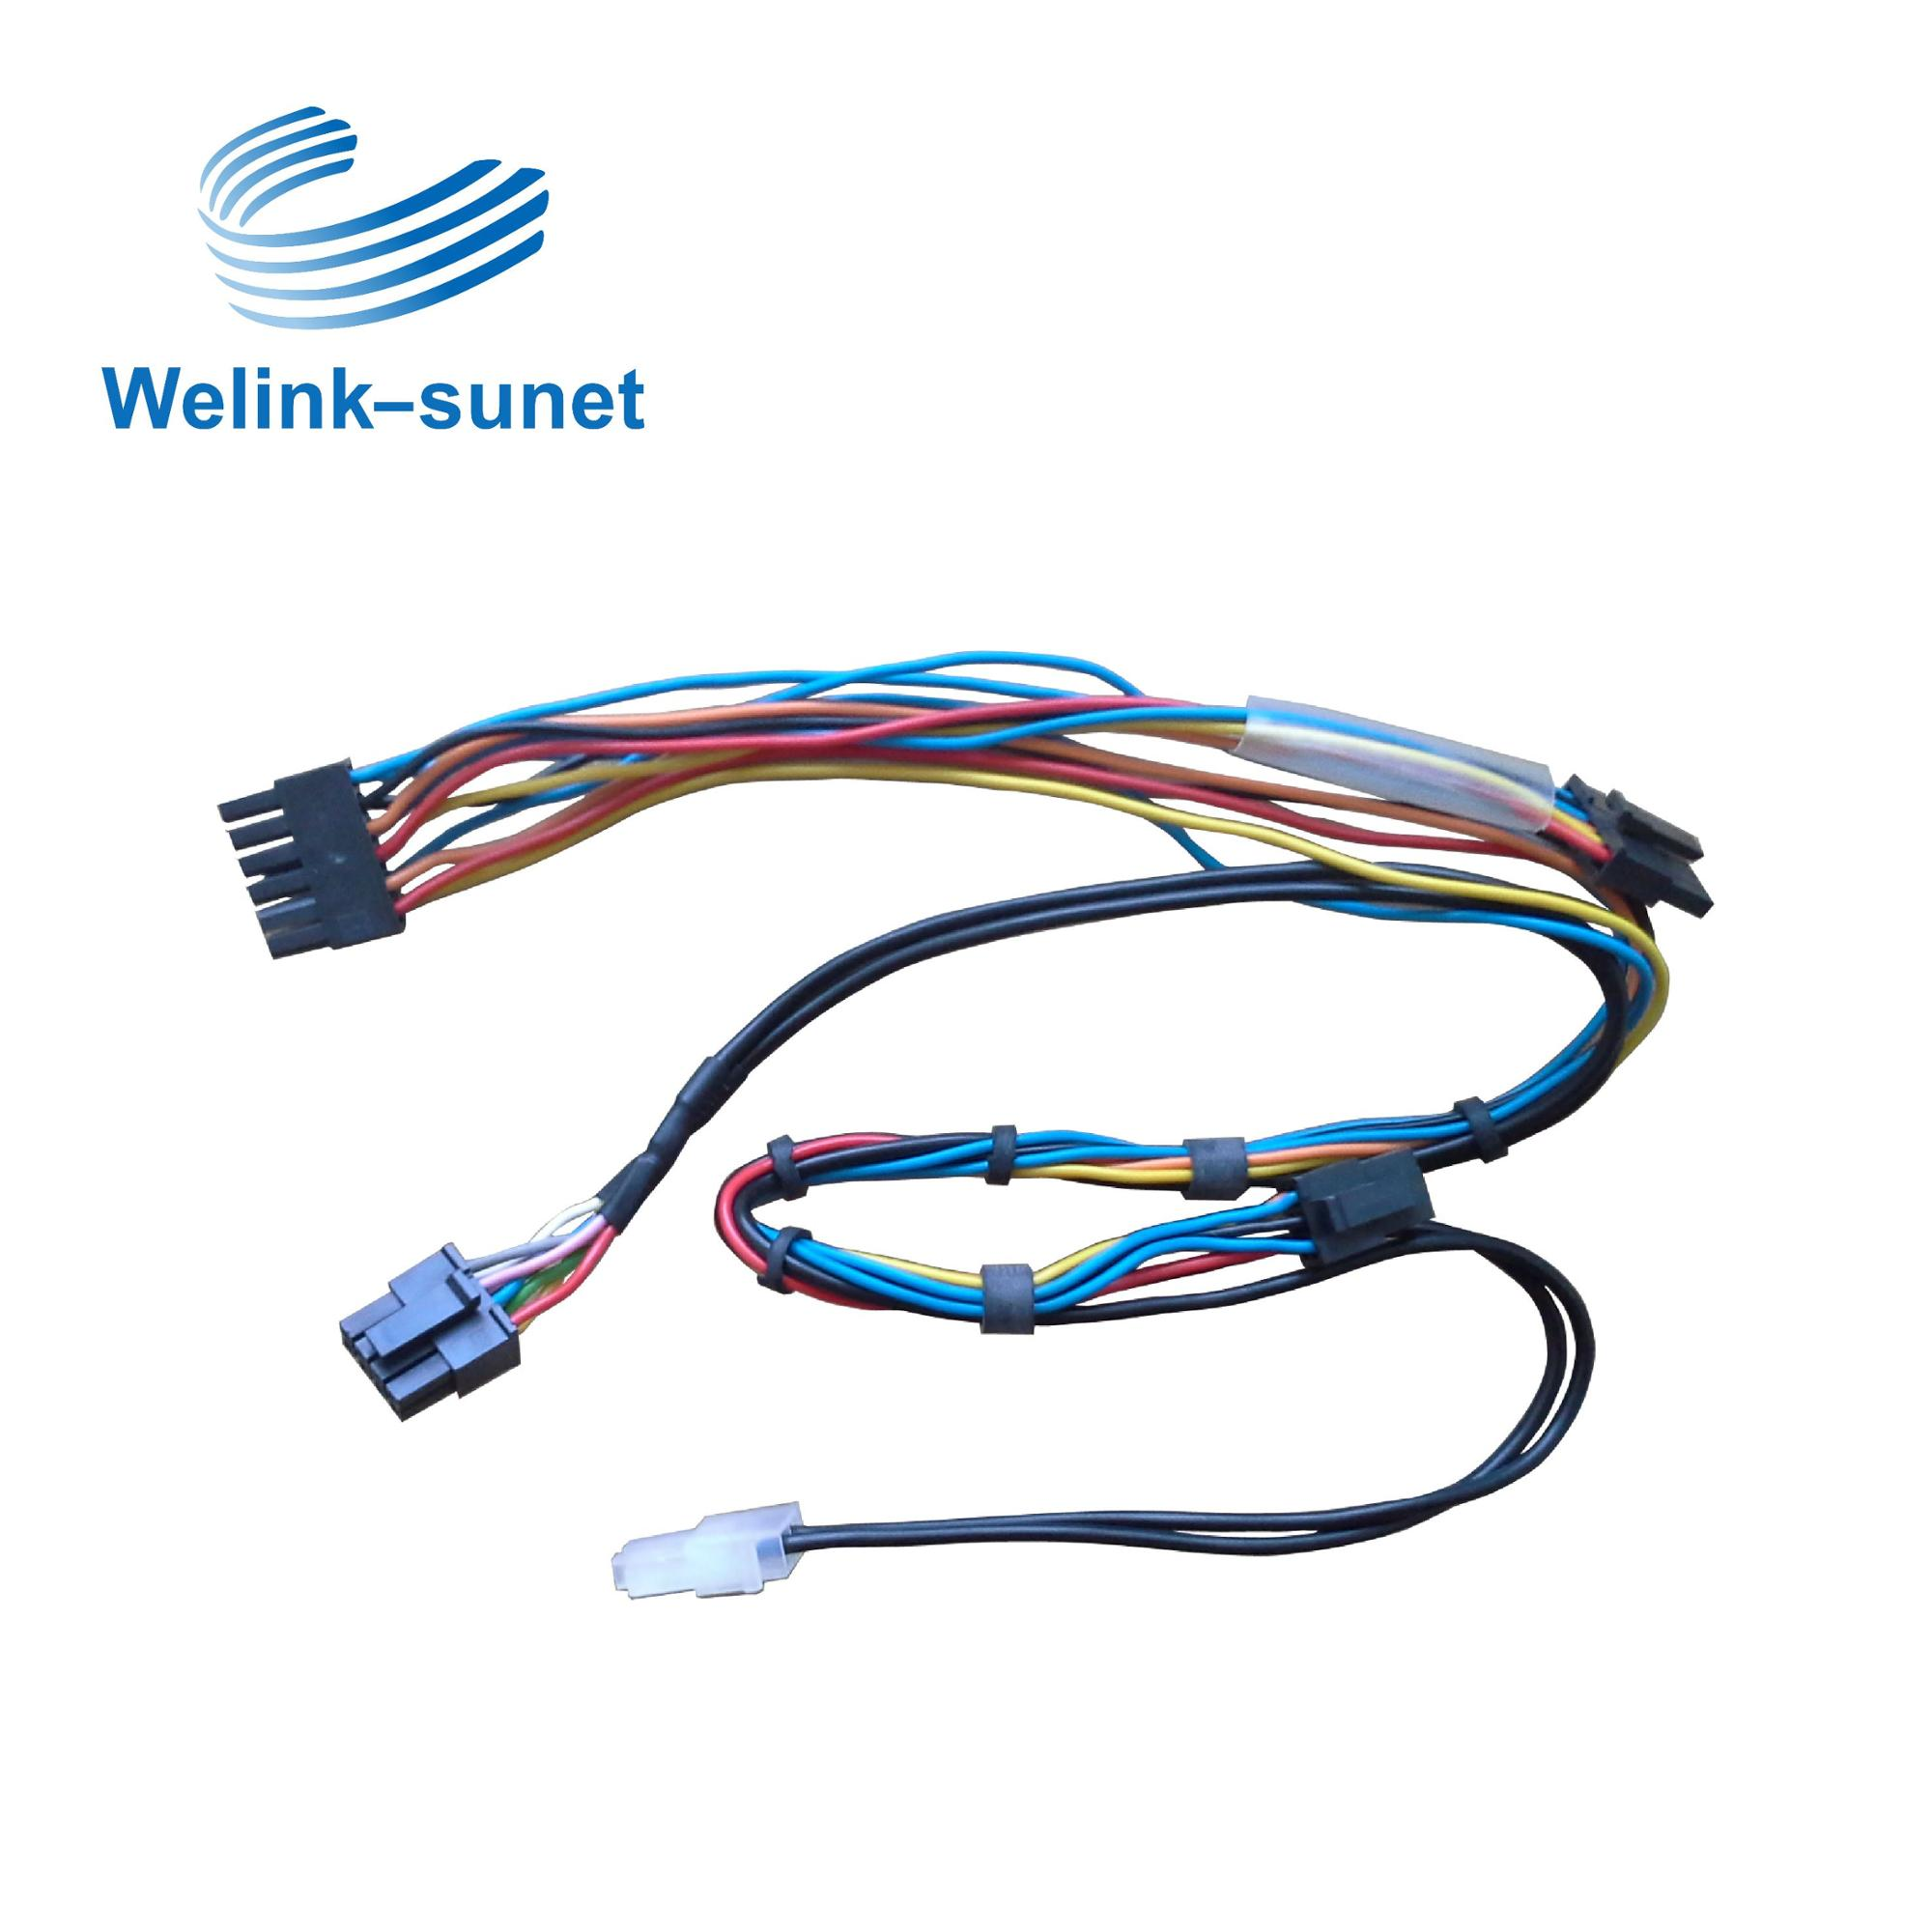 Molex 42mm 6p Connector Add German Standard Lify Cable Wire Harness Wiring For Semiconductor Equipment